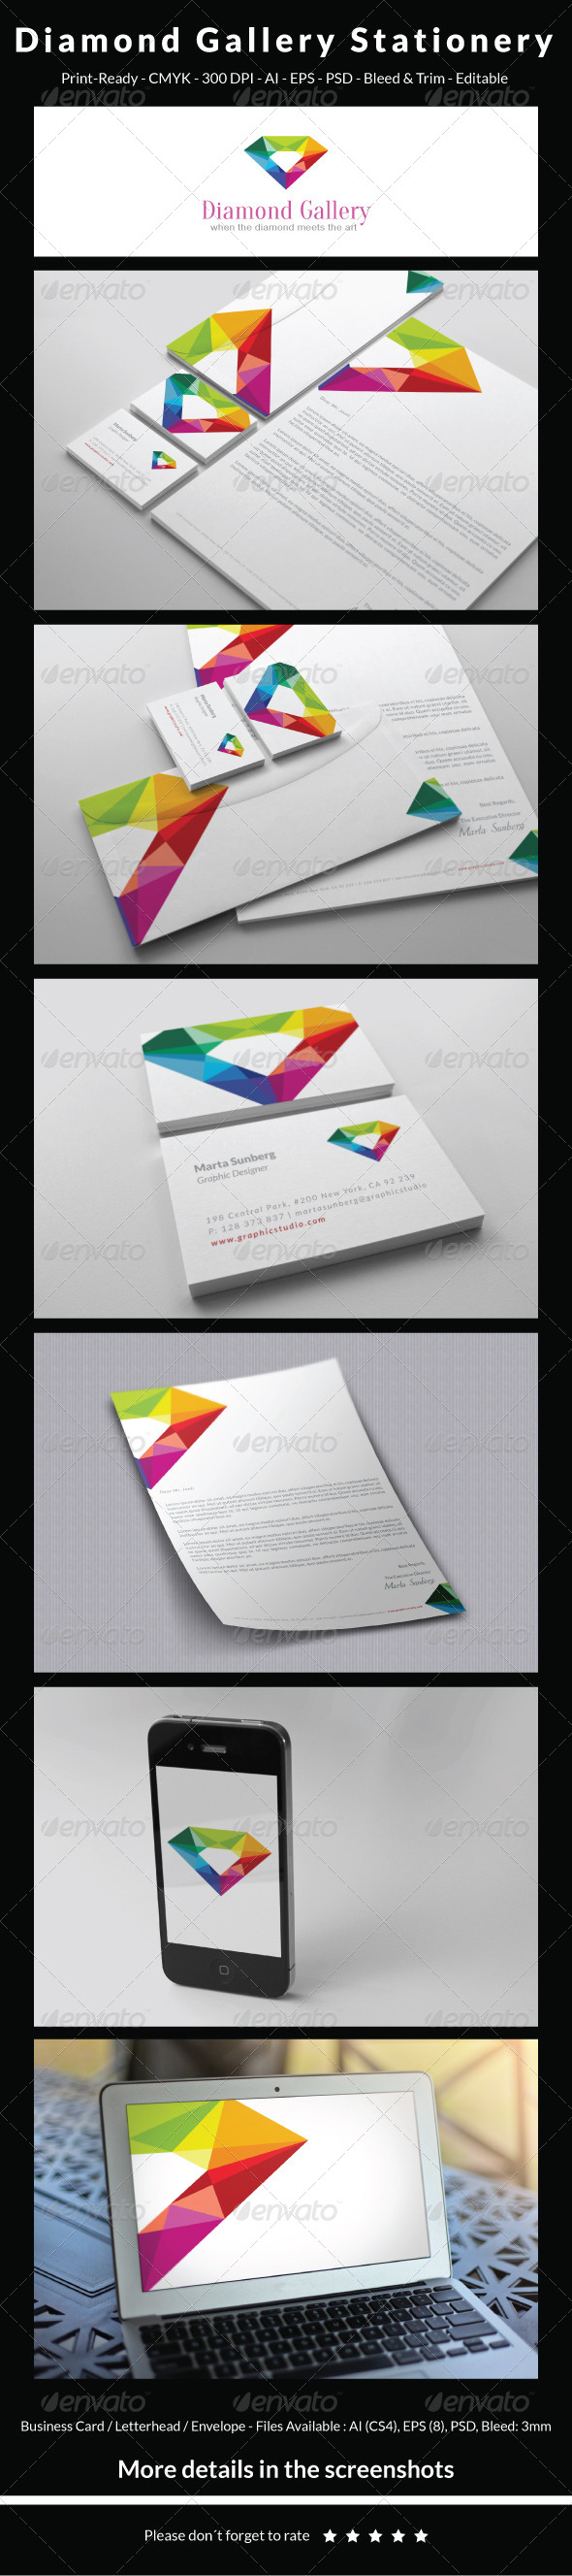 GraphicRiver Diamond Gallery Stationery 5434923